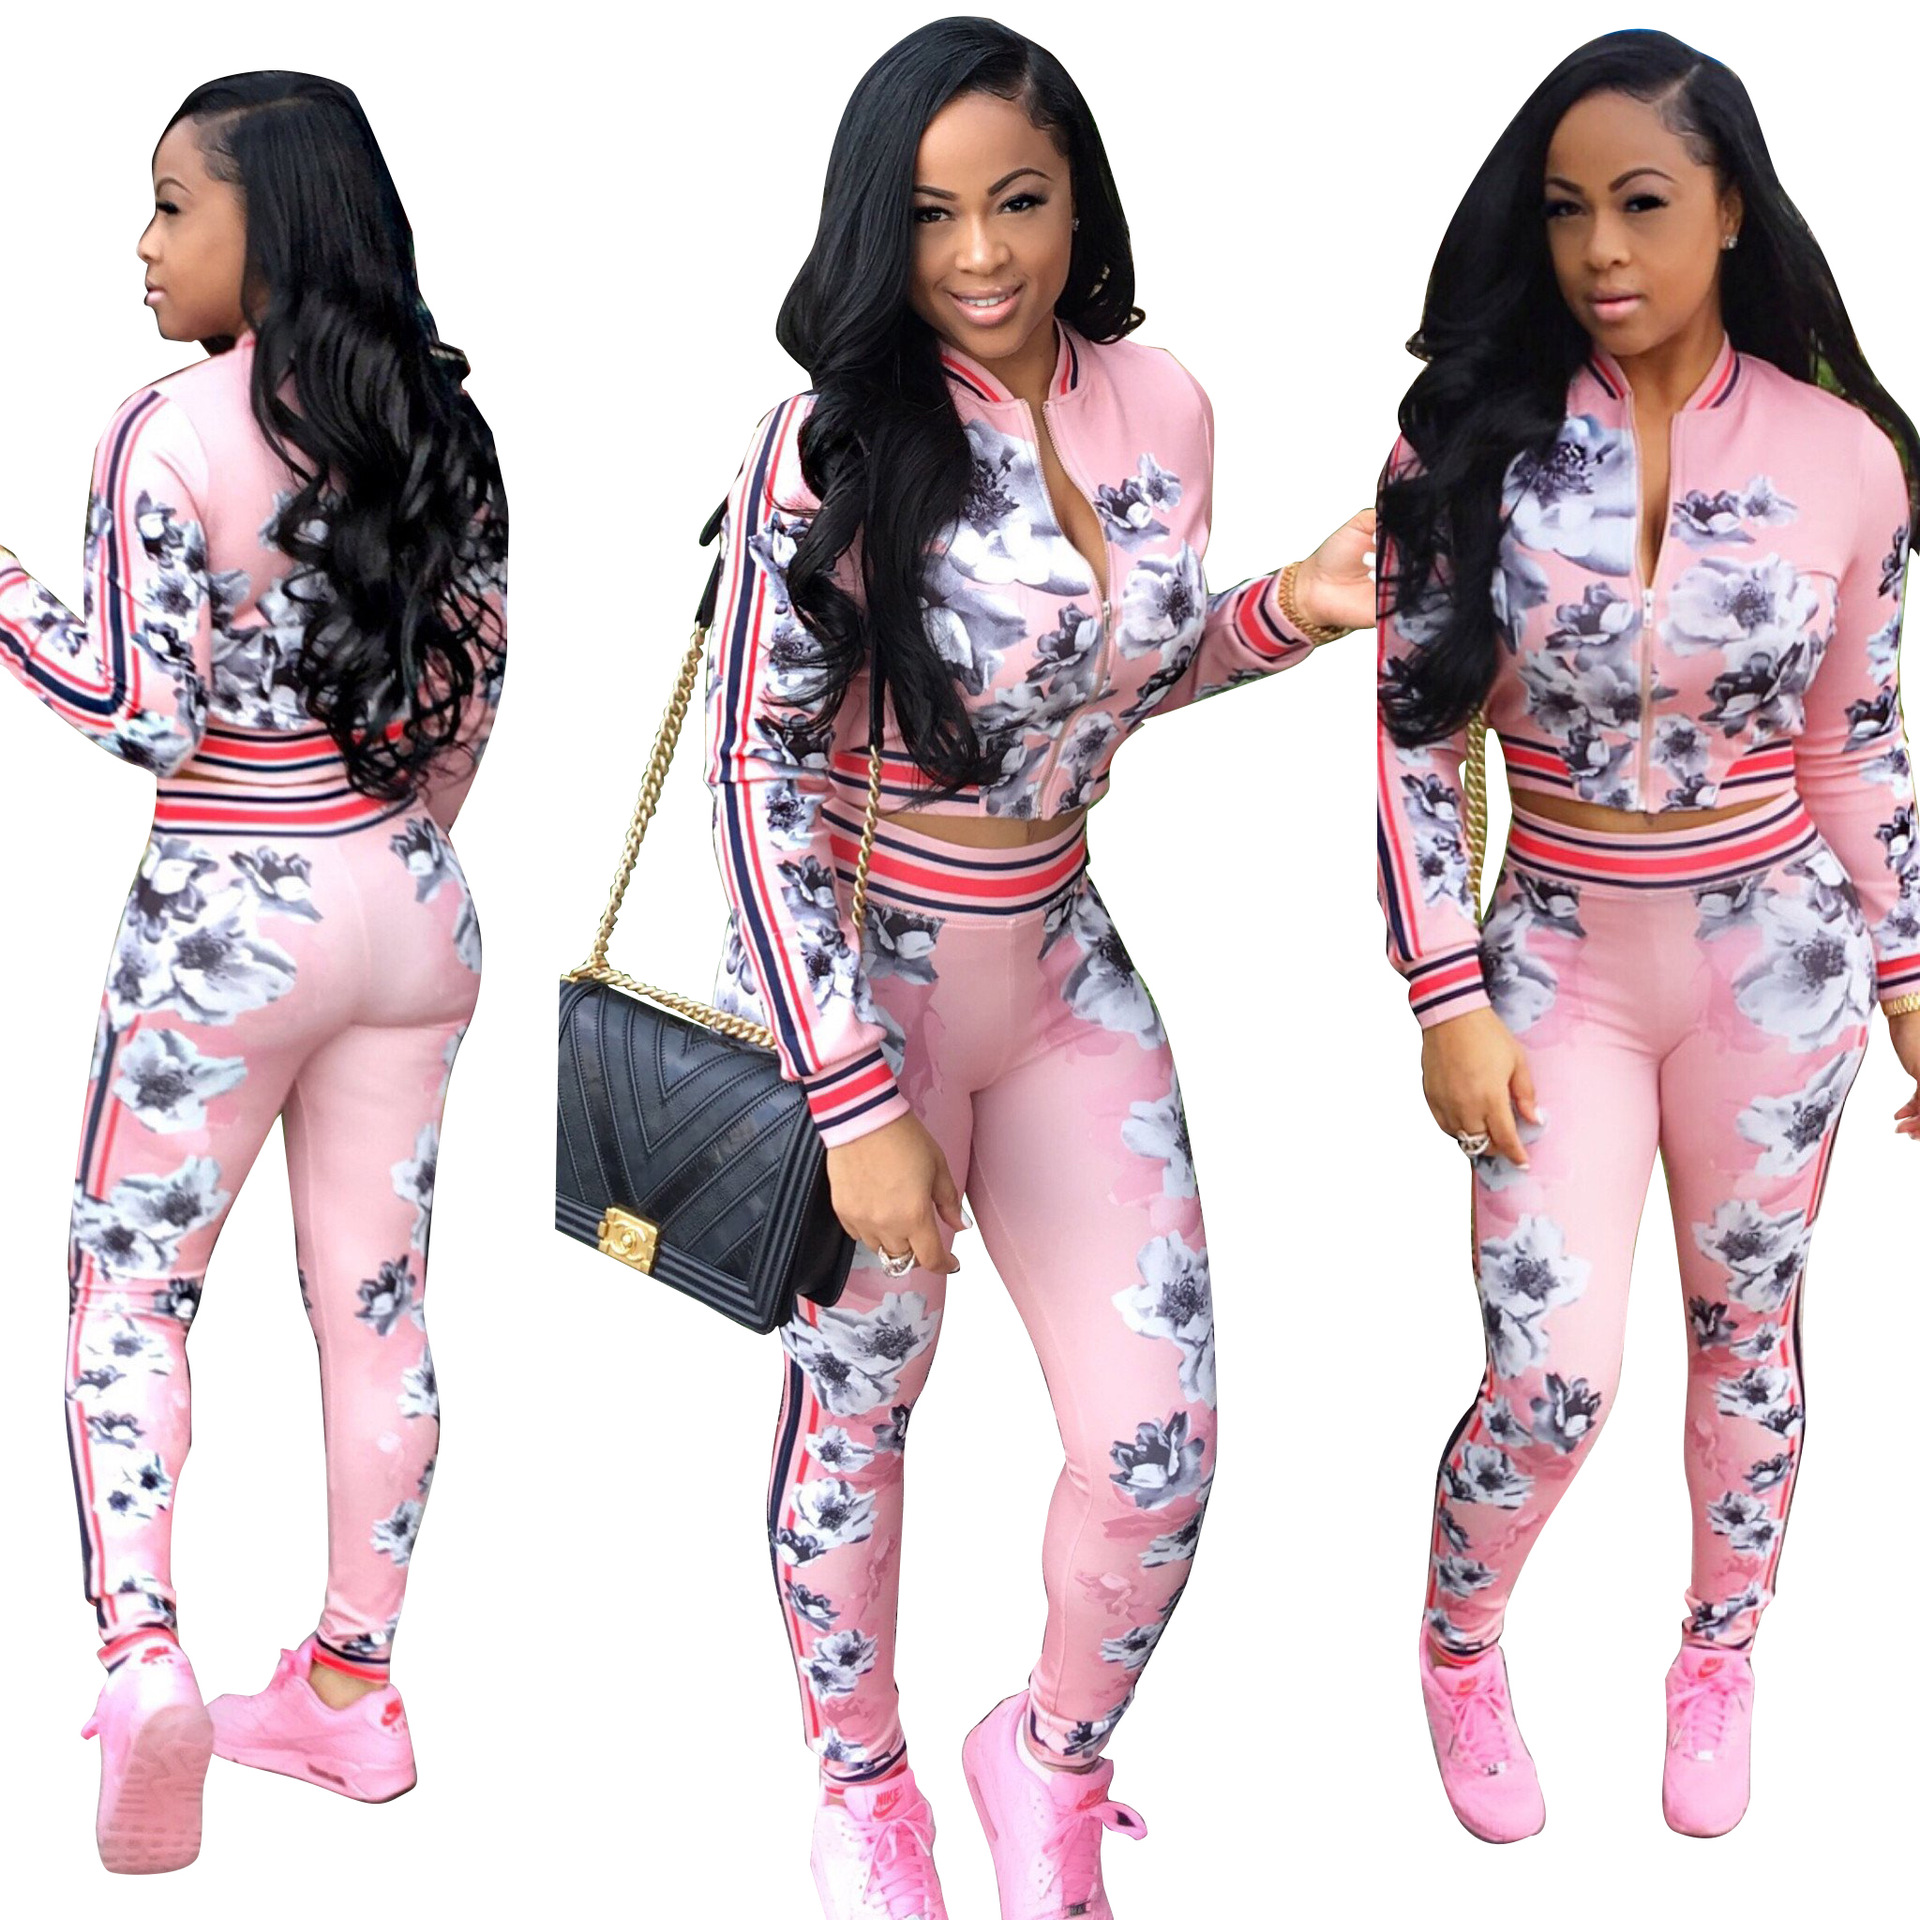 9679de8b086fa 2018 Autumn 2 Piece Set Women Crop Top and Pants Tracksuit Matching Sets  Winter Lady Print Plus Size Two Piece Outfits for Women-in Women s Sets  from ...